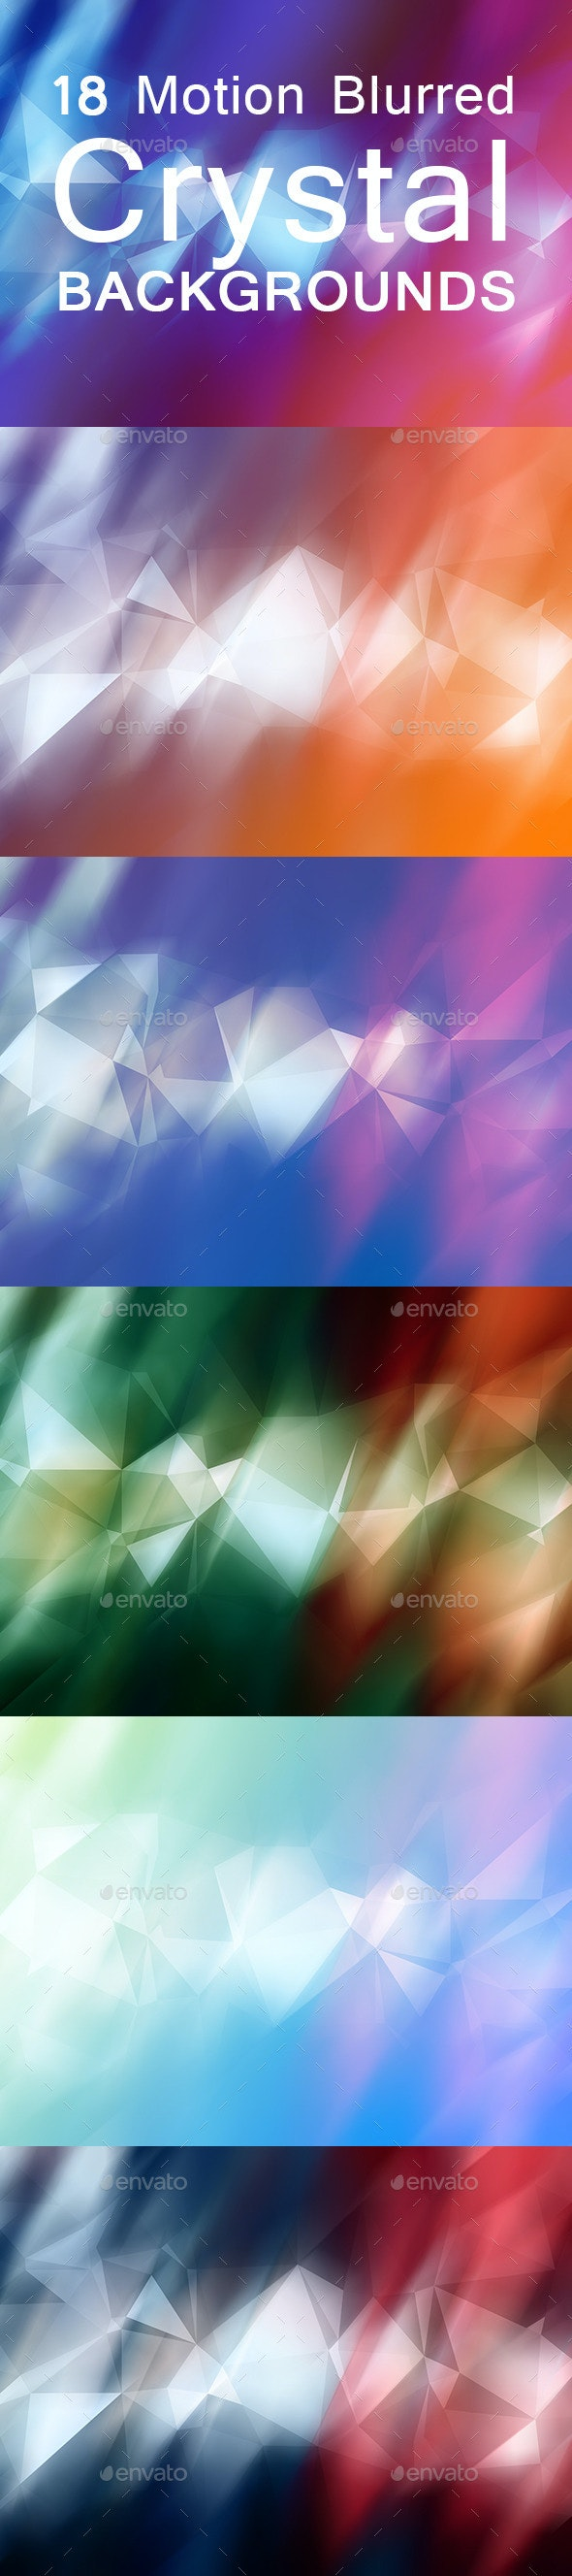 18 Motion Blurred Crystal  Backgrounds - Abstract Backgrounds